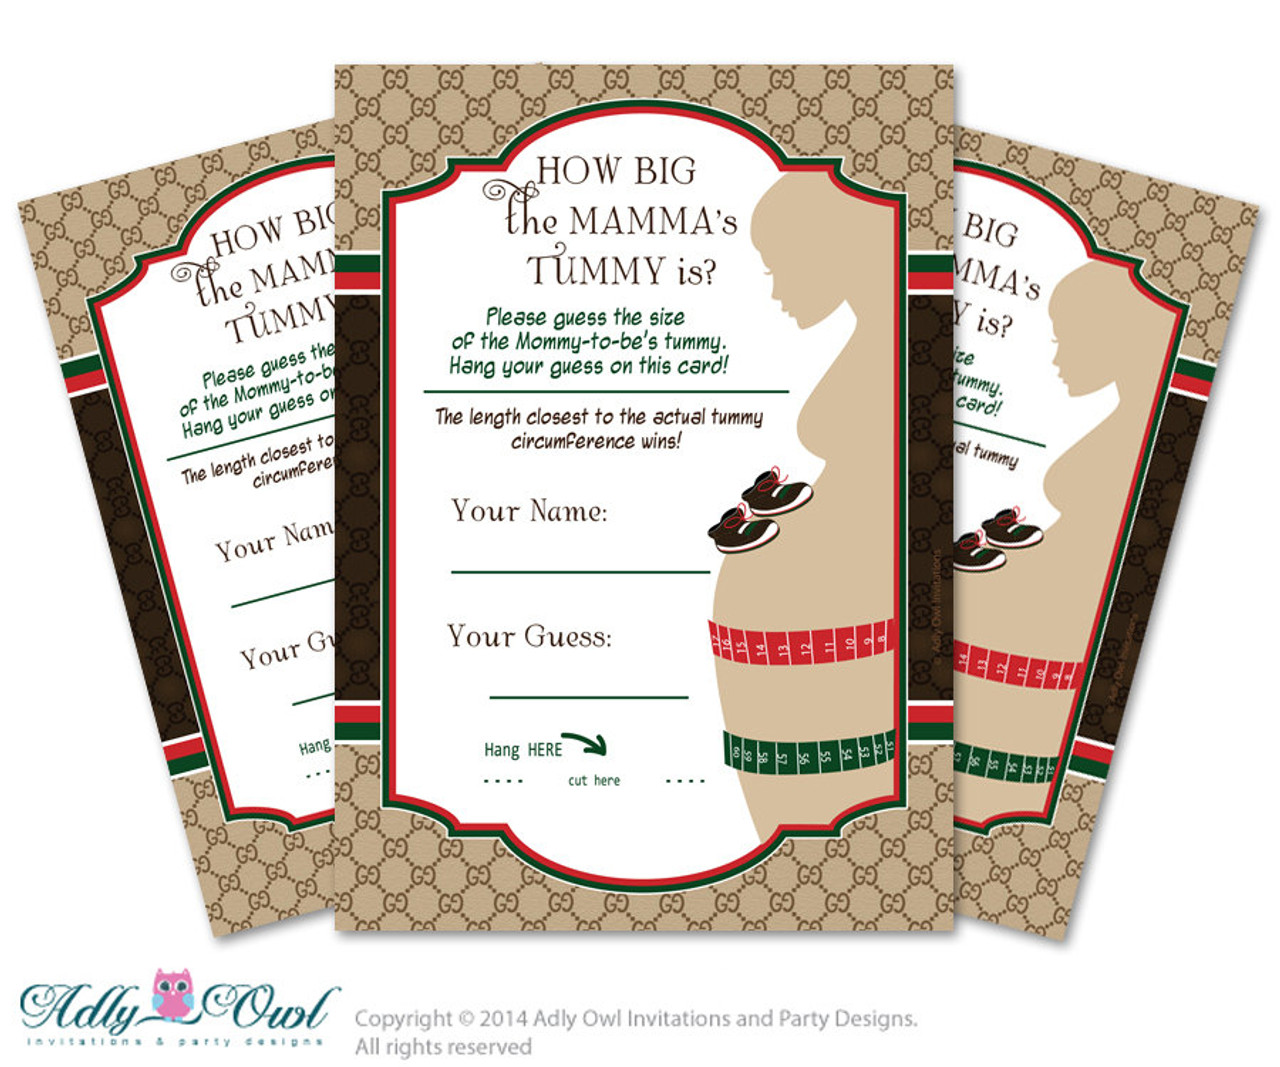 image regarding Guess Who Game Printable named Gucci Boy Design and style Bet Stomach Sport, Belly Wager match Printable Card for Kid Type Shower Do-it-yourself Brown Purple Gucci